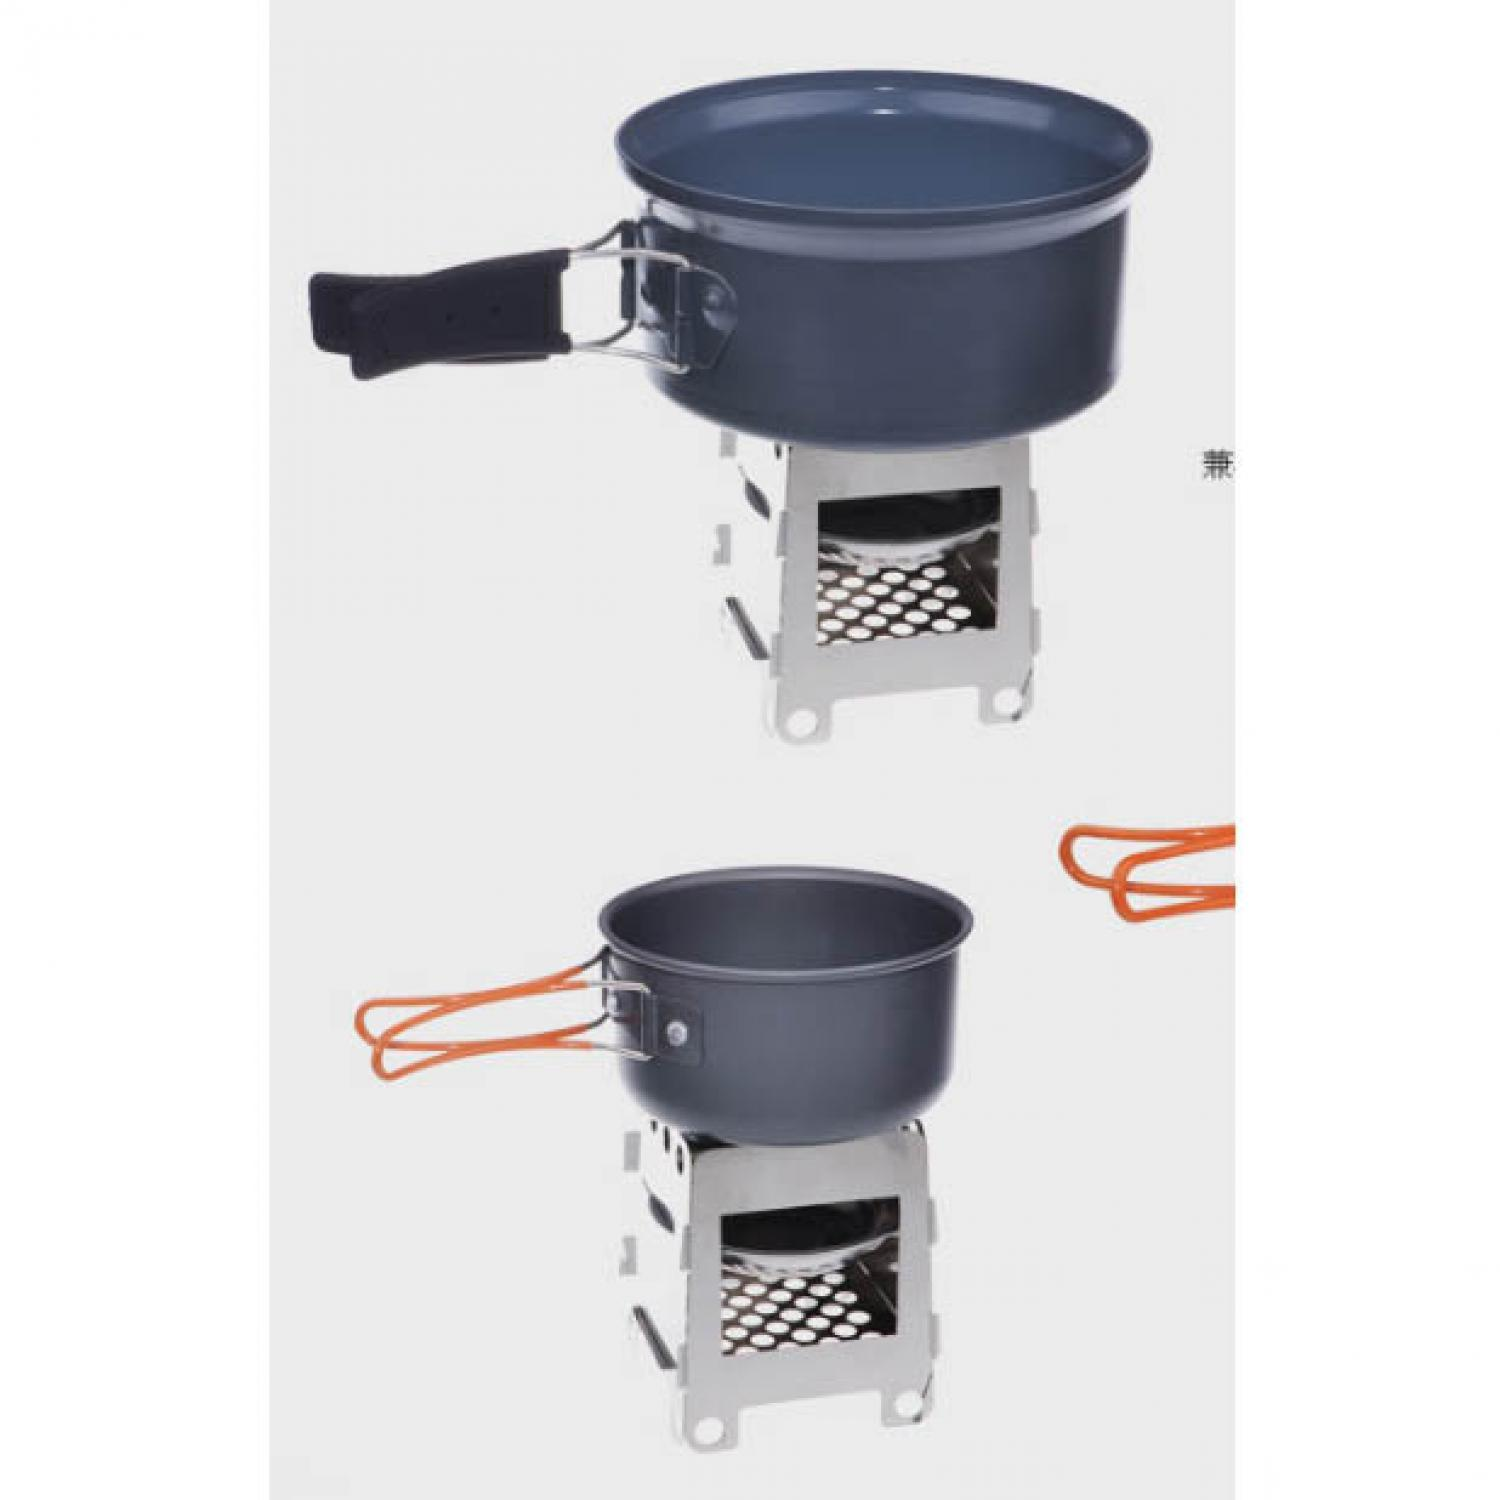 PROMO MURAH Outdoor Camping Folding Wood Stove Stainless Steel / Besi Kompor / Kompor outdoor